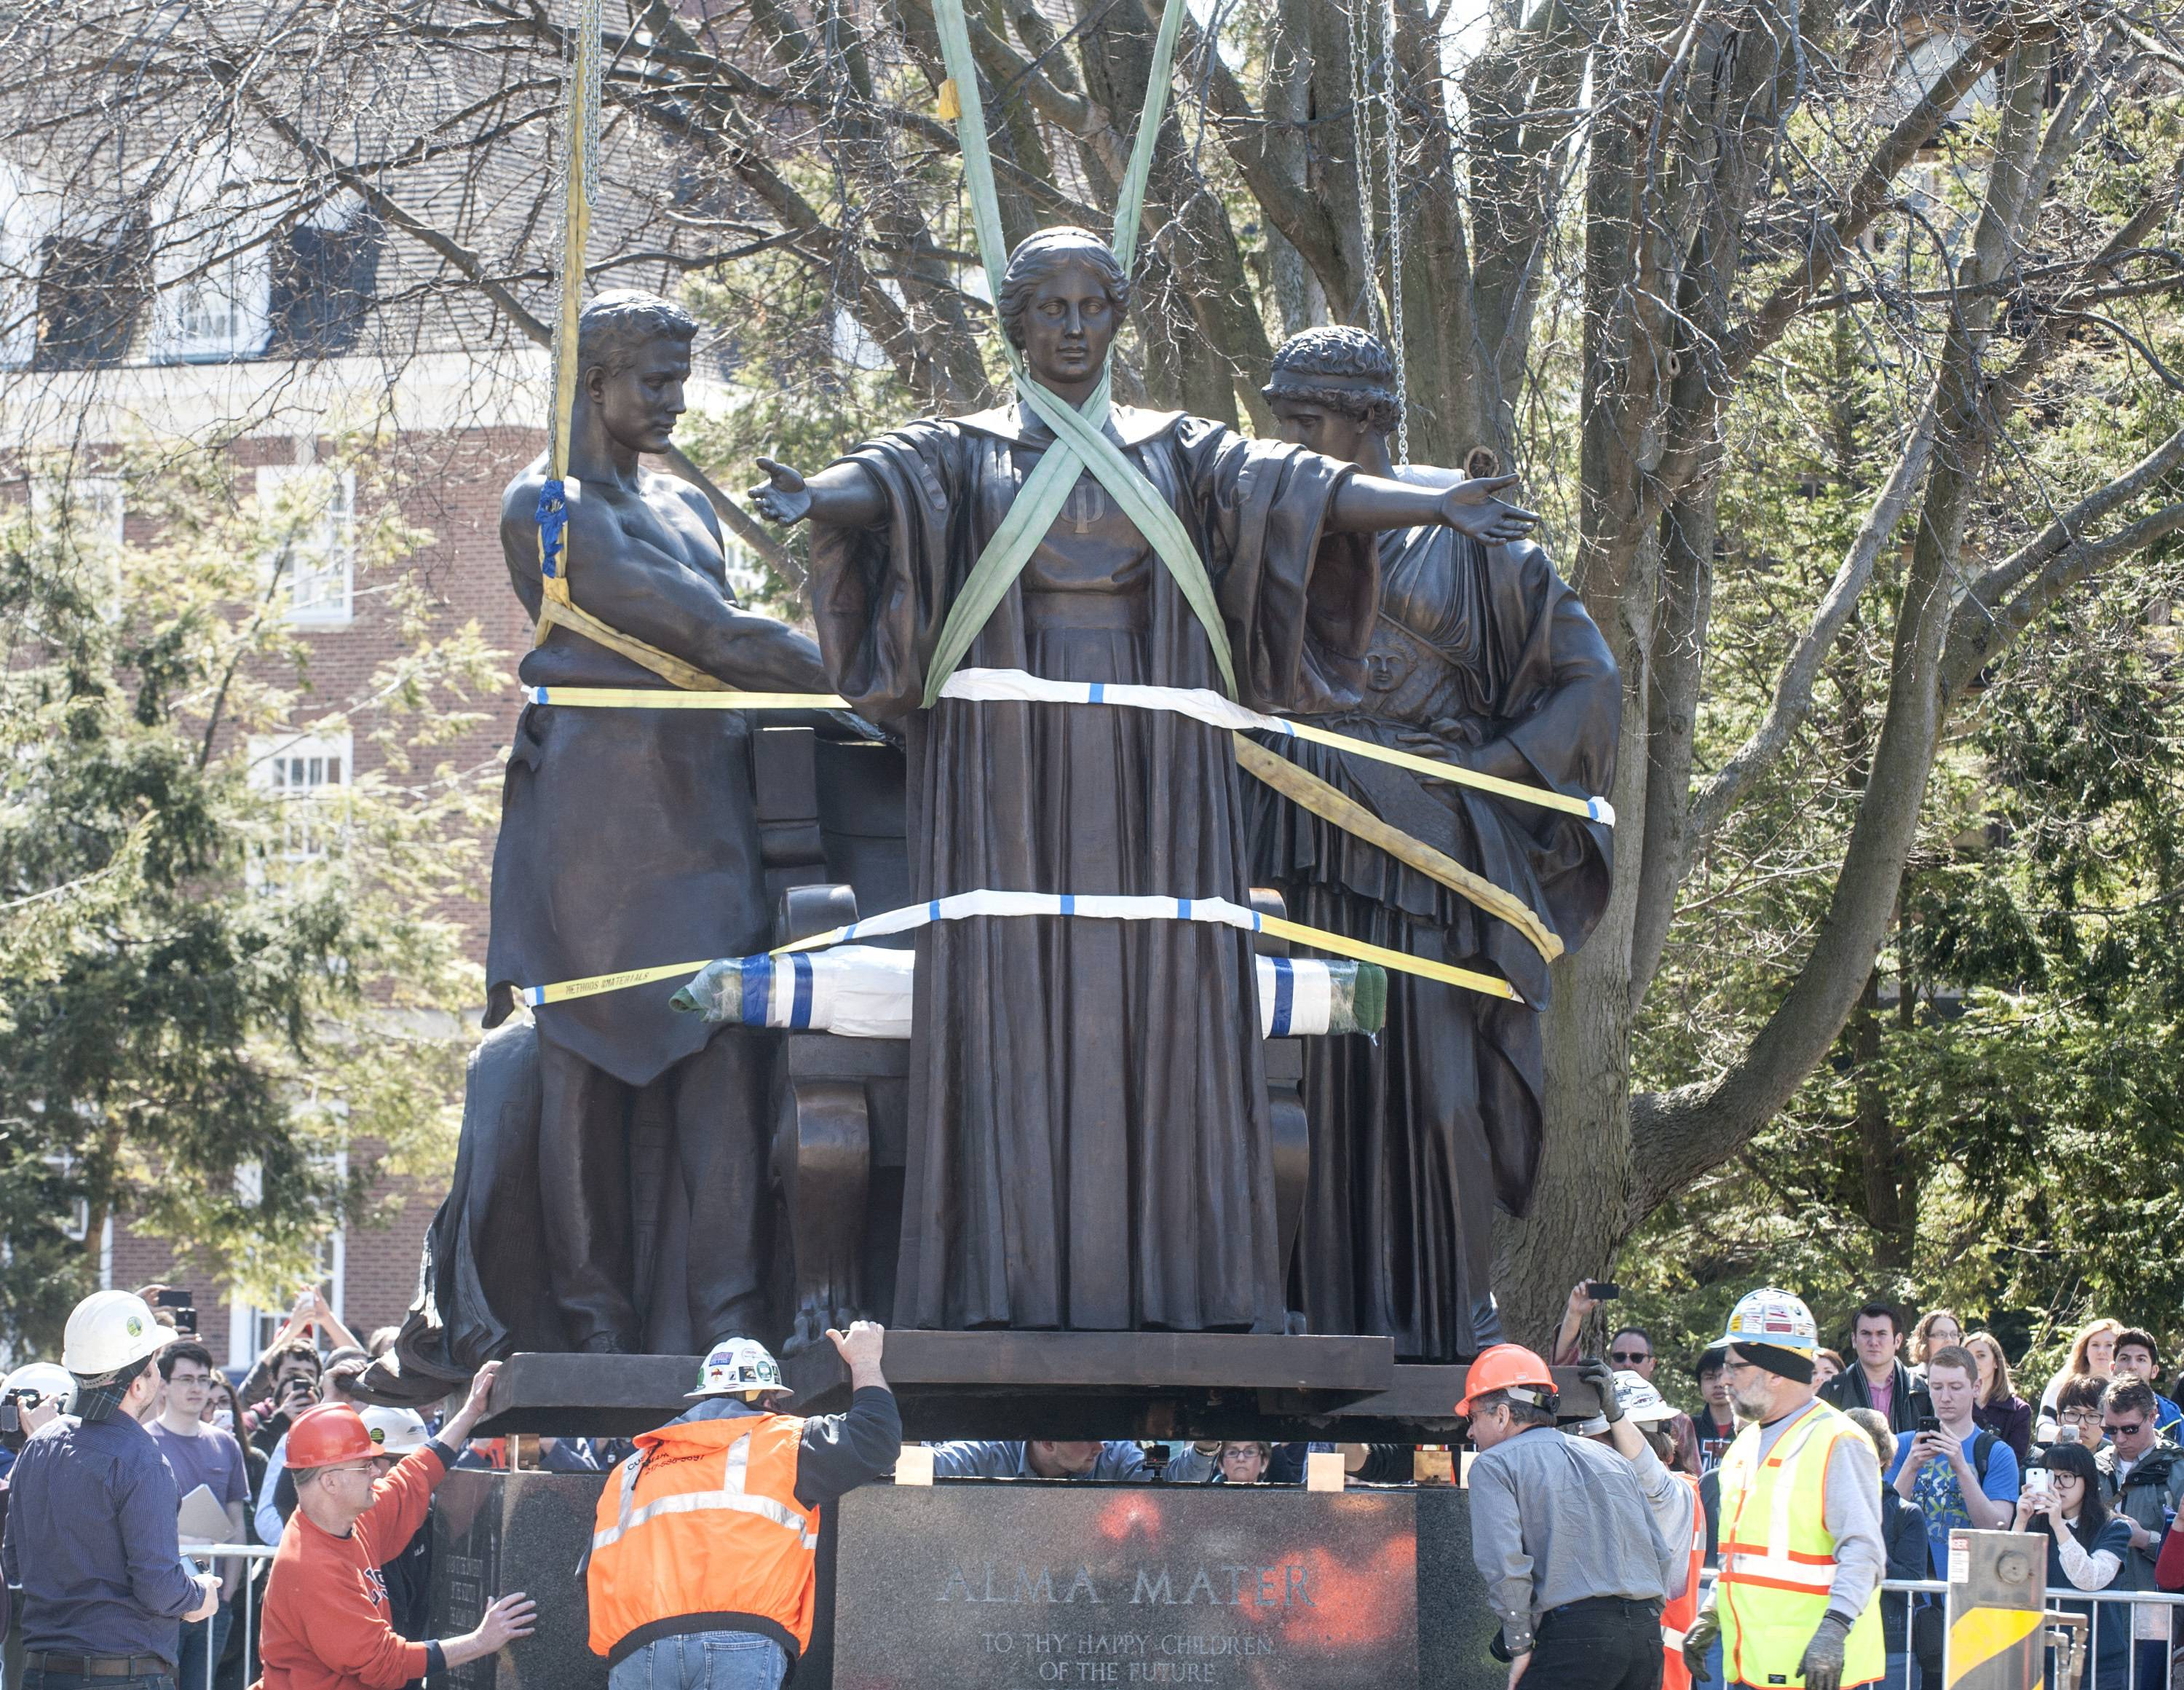 The University of Illinois' Alma Mater sculpture is set onto its base Wednesday in front of Altgeld Hall in Urbana.